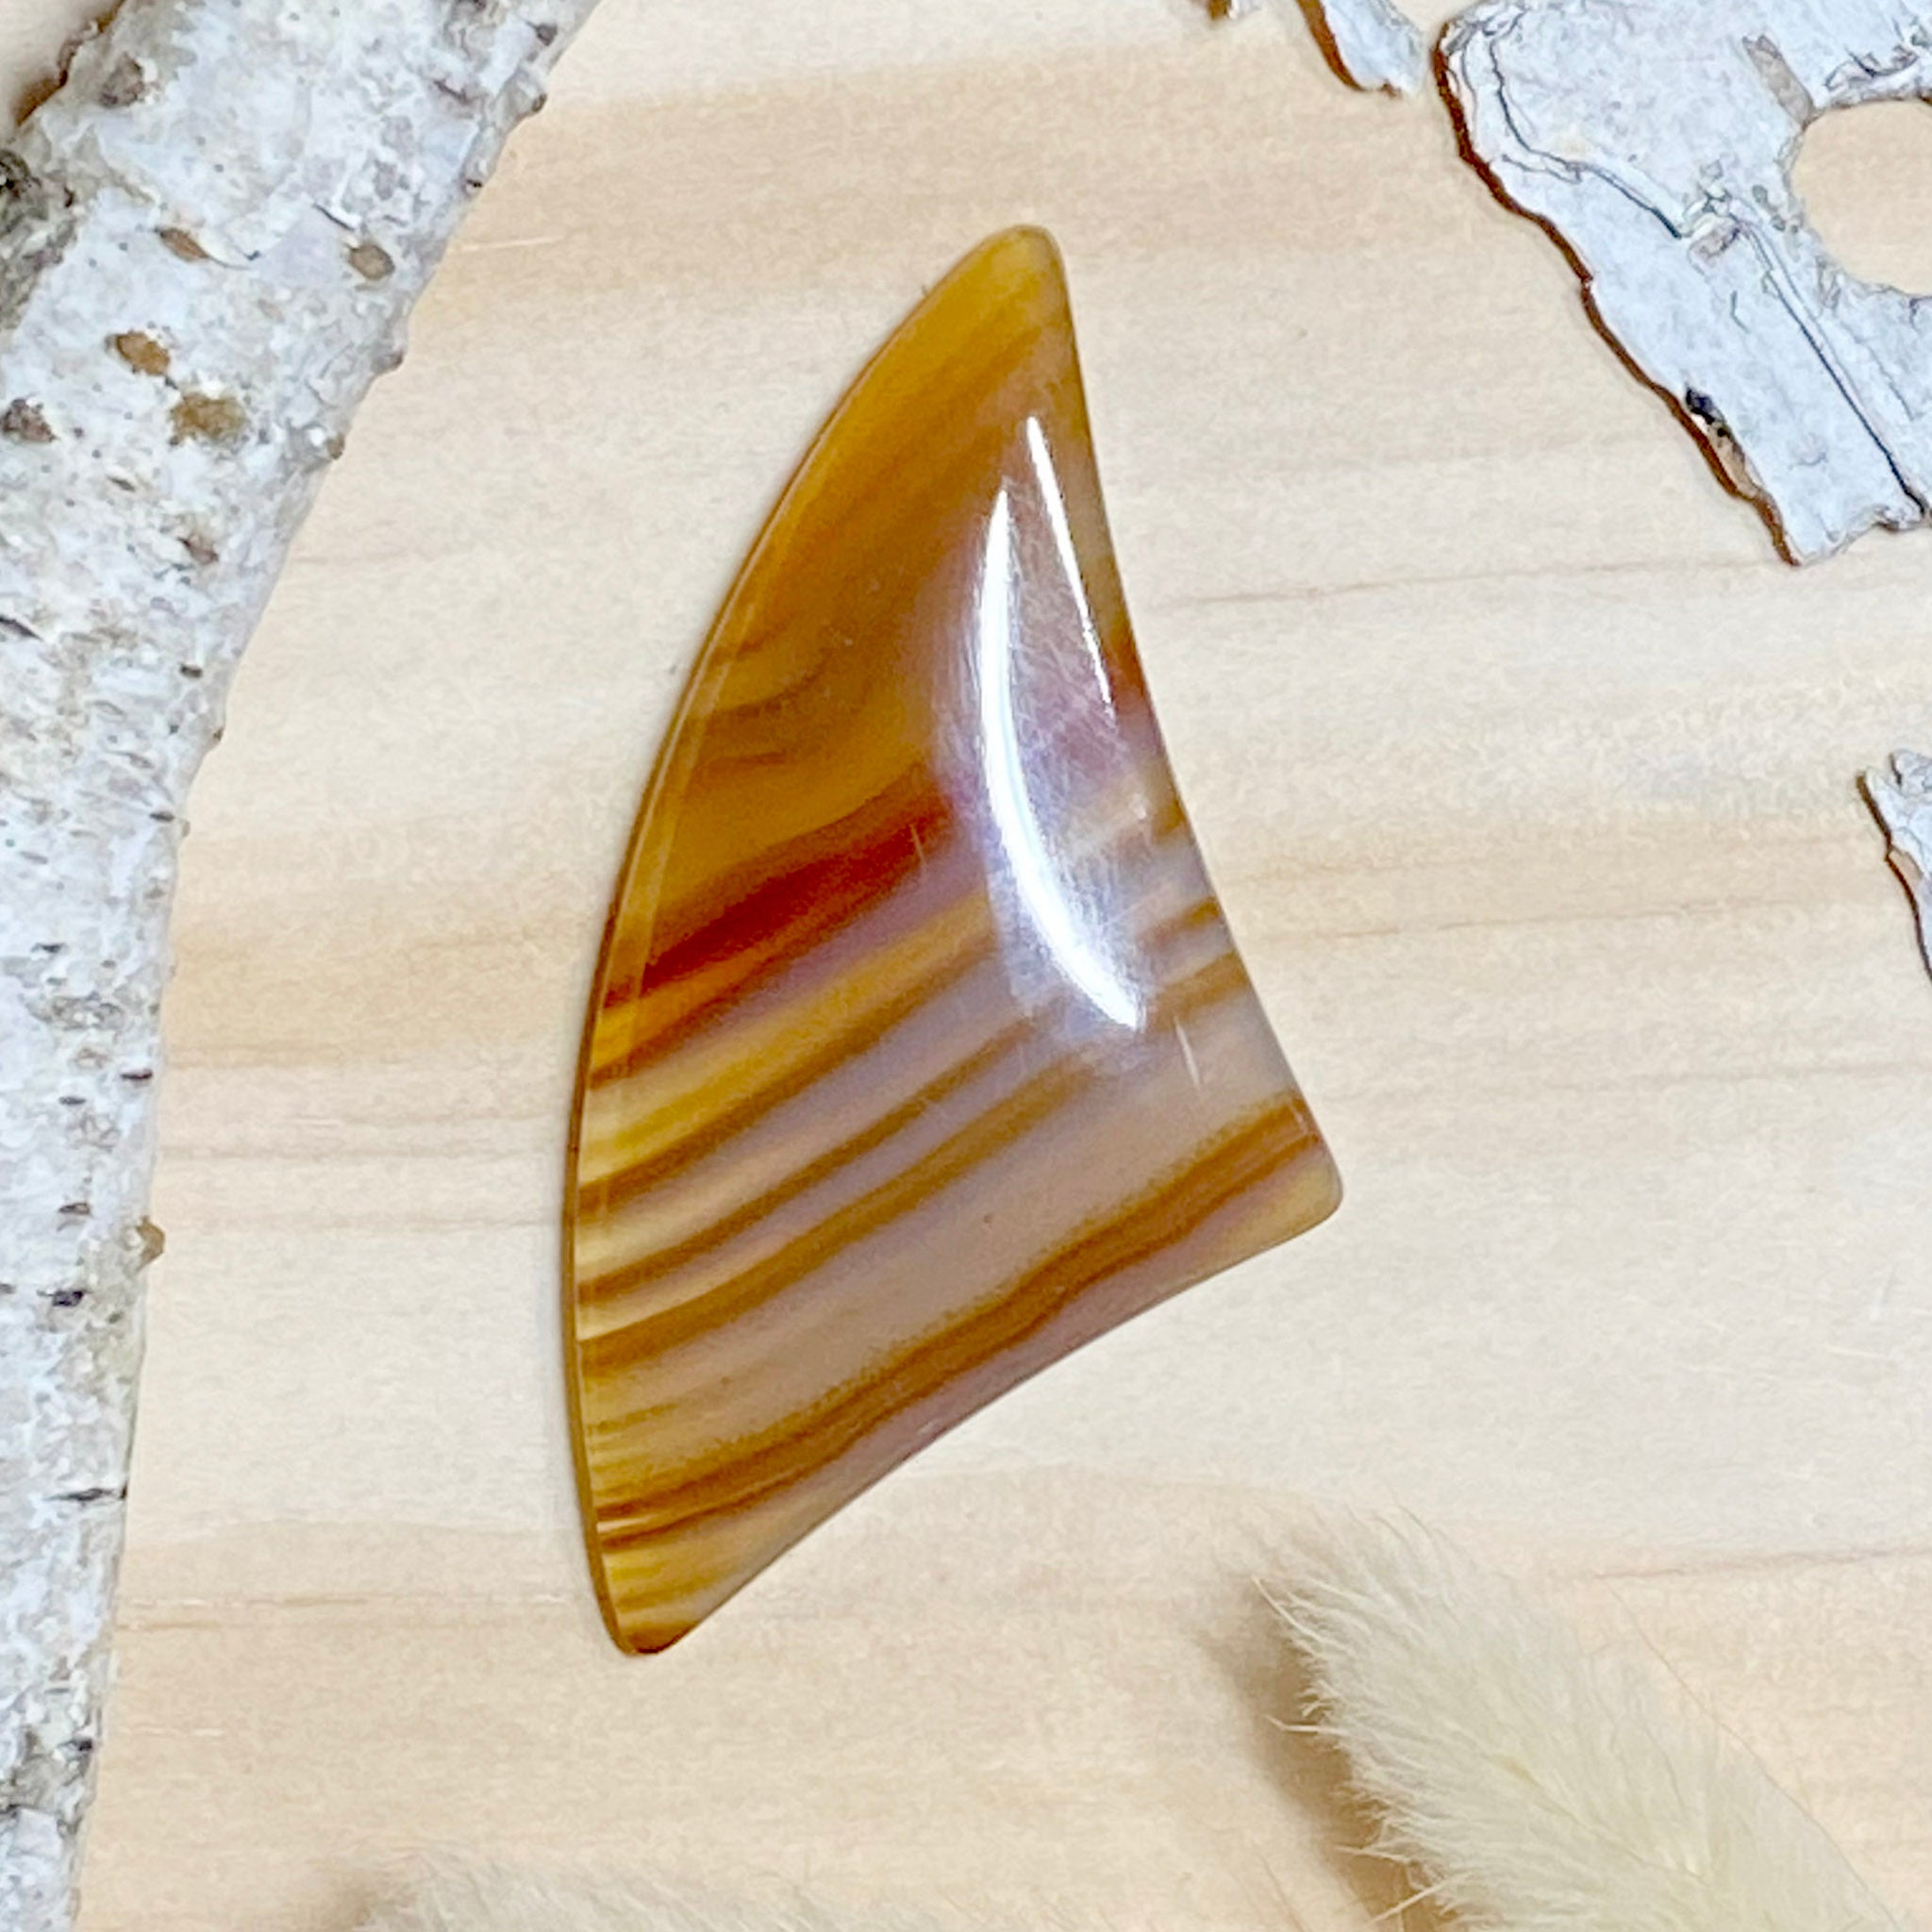 Brazilian Agate - Stone Treasures by the Lake